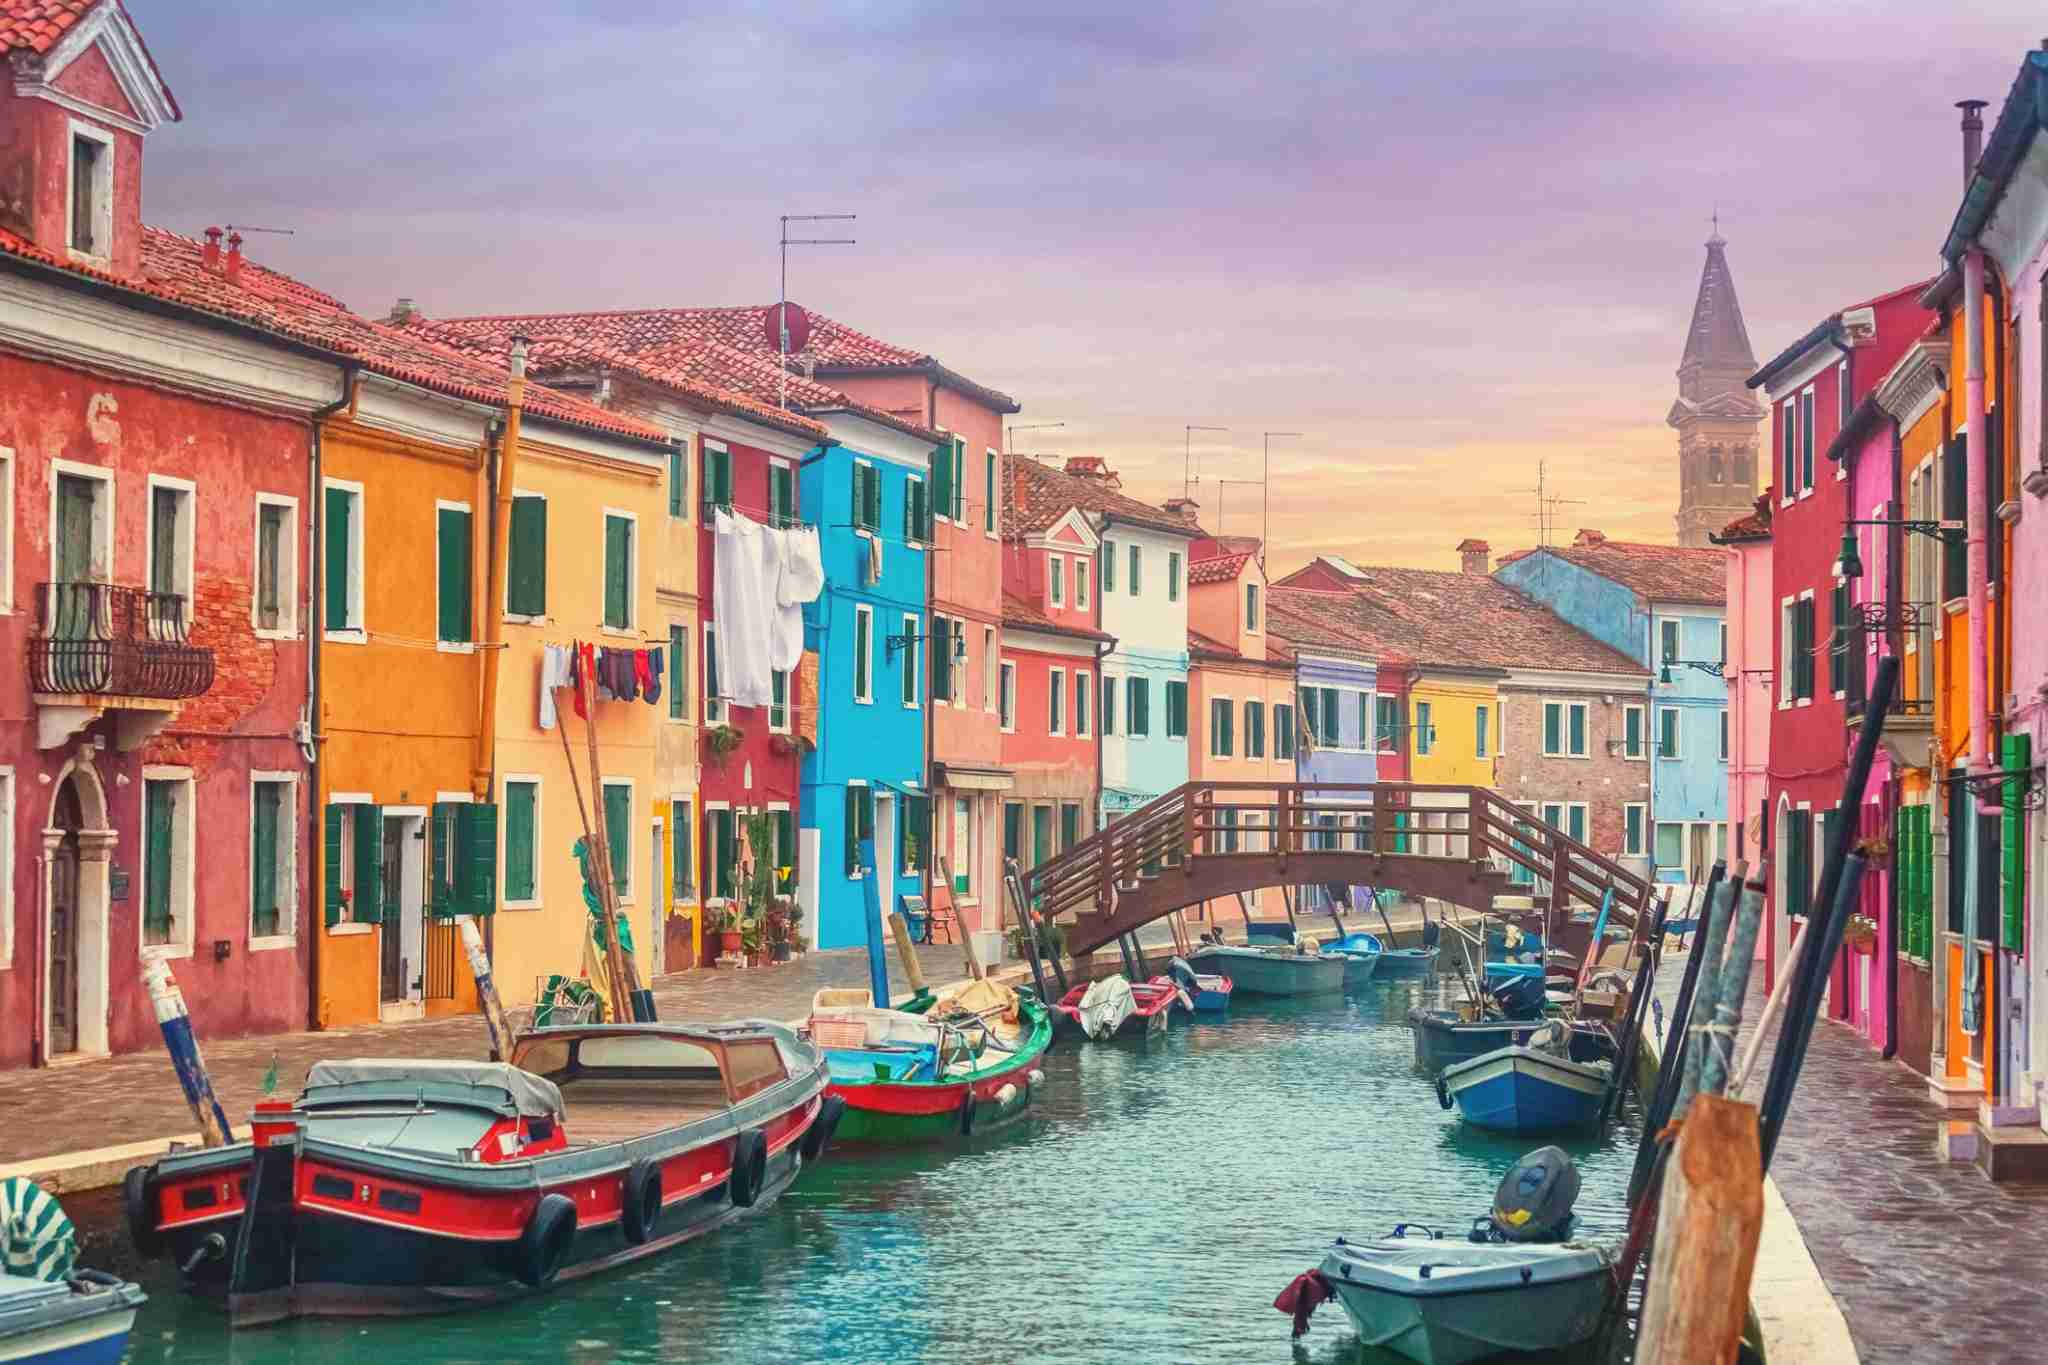 The colourful buildings of Burano, Italy in Venice. (Photo by Peter Zelei Images/Getty)